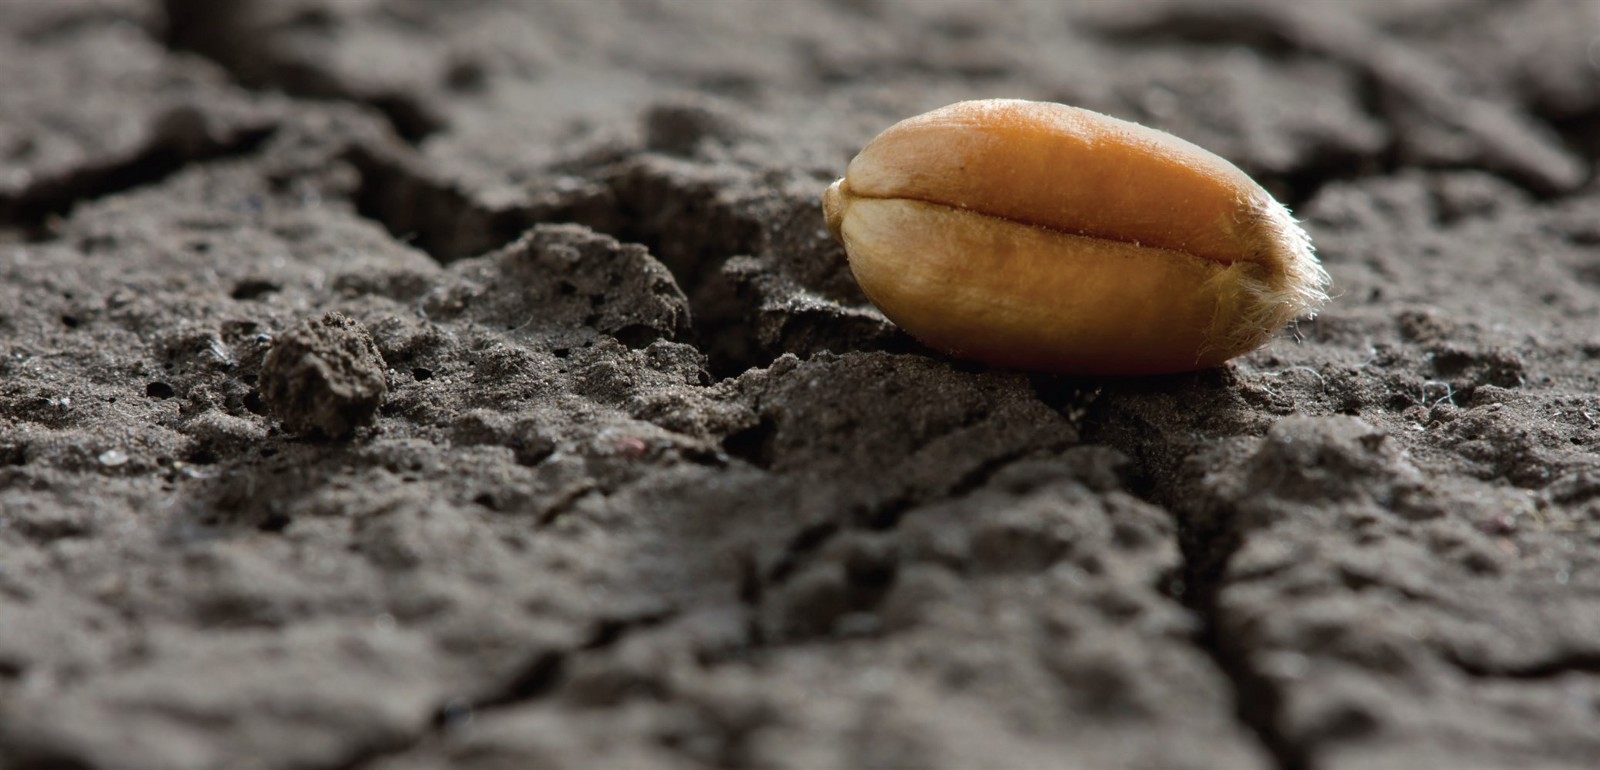 Cancer — The Seed and Soil